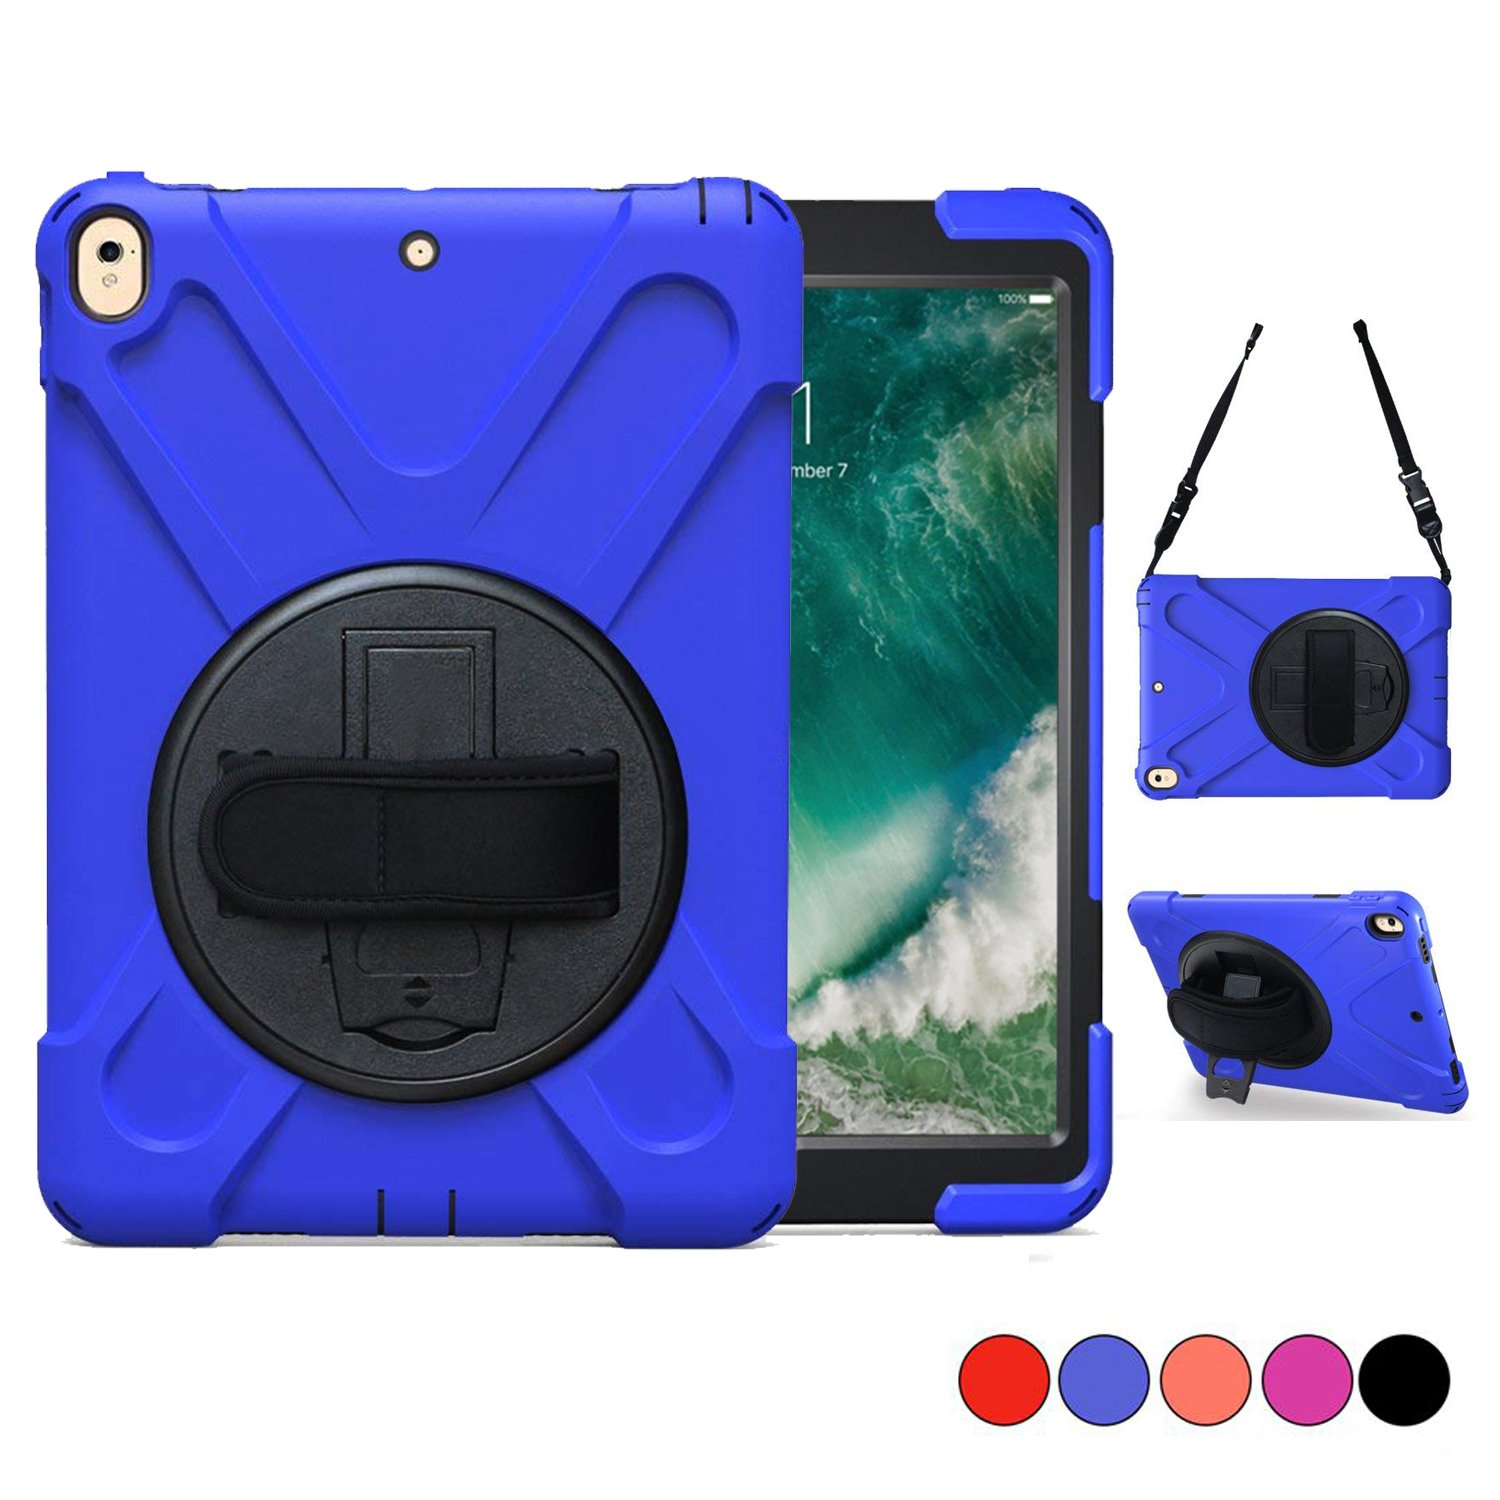 iPad Pro 10.5 Case 2017/ iPad Air 3 Case 2019 with Stand for Kids, TSQ Shockproof Hard Durable Silicon Bumper Case with 360 Swivel Stand, Hand Grip,Neck Strap for 10.5 Inch Cover Kids Child Boys Blue